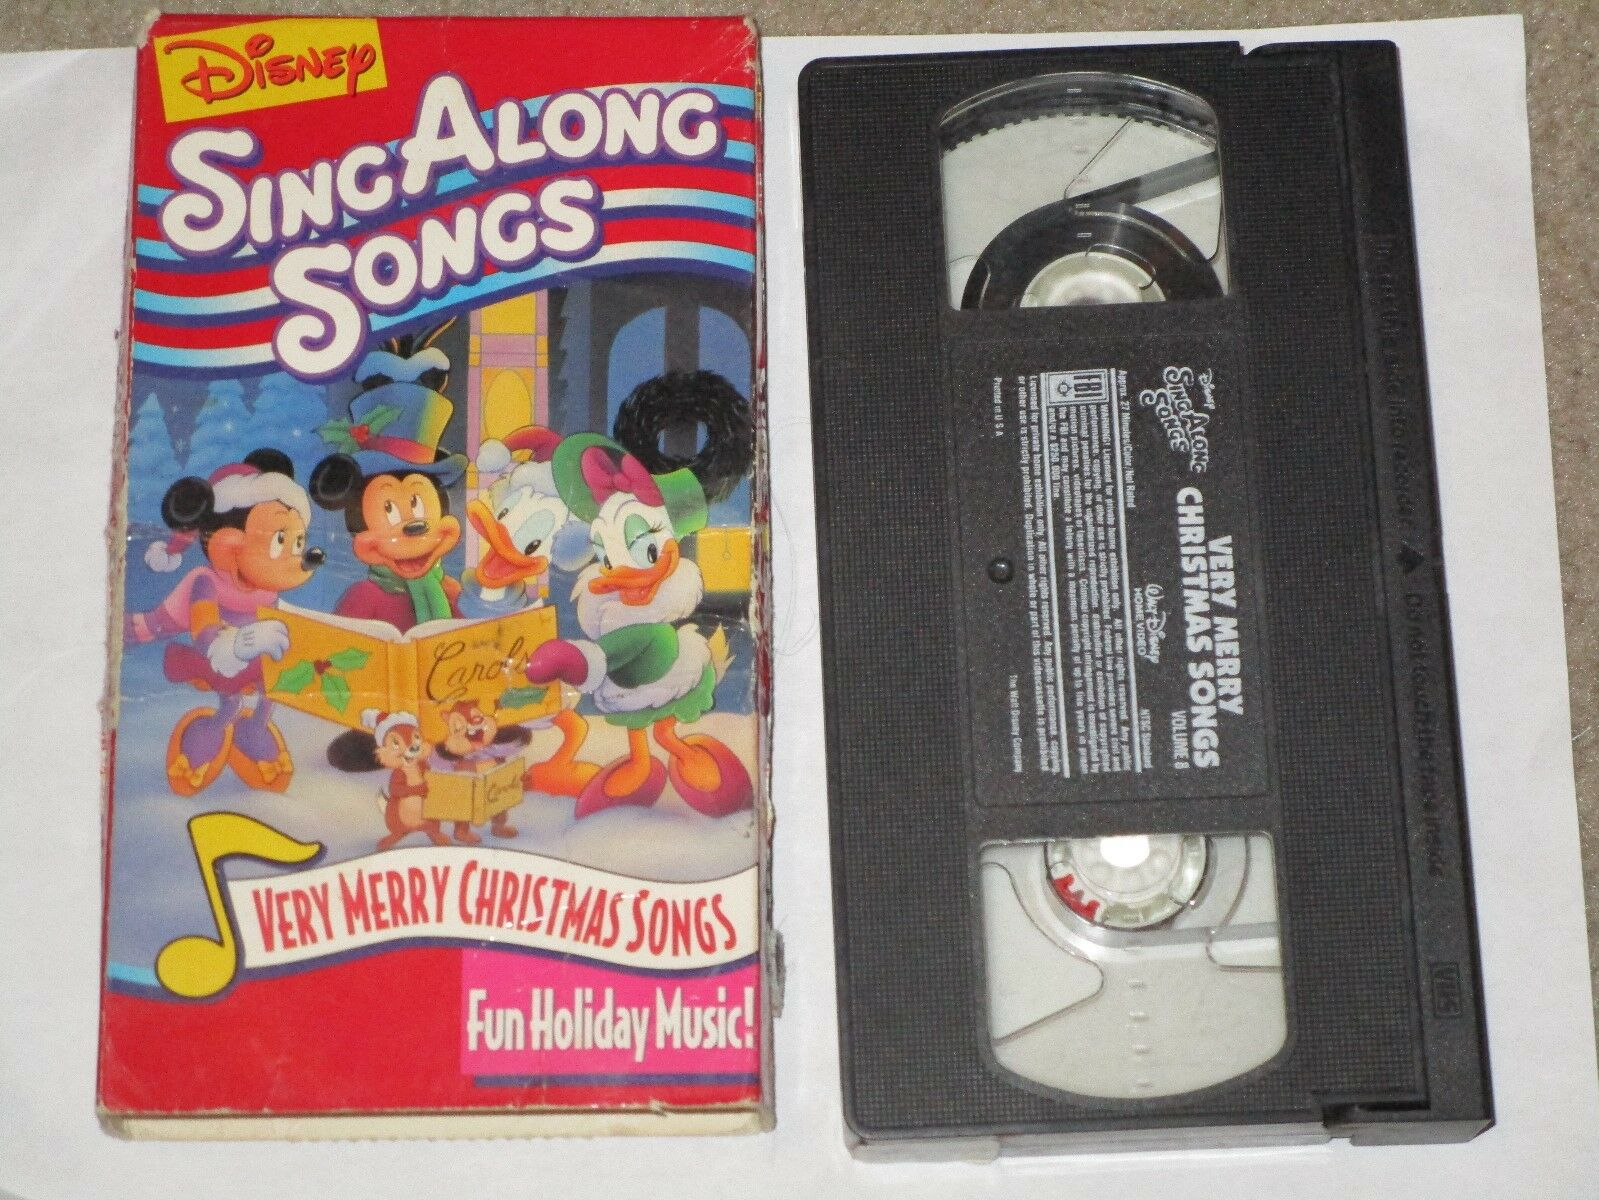 VINTAGE DISNEY SING Along Songs Very Merry Christmas Songs Vhs Tape ...